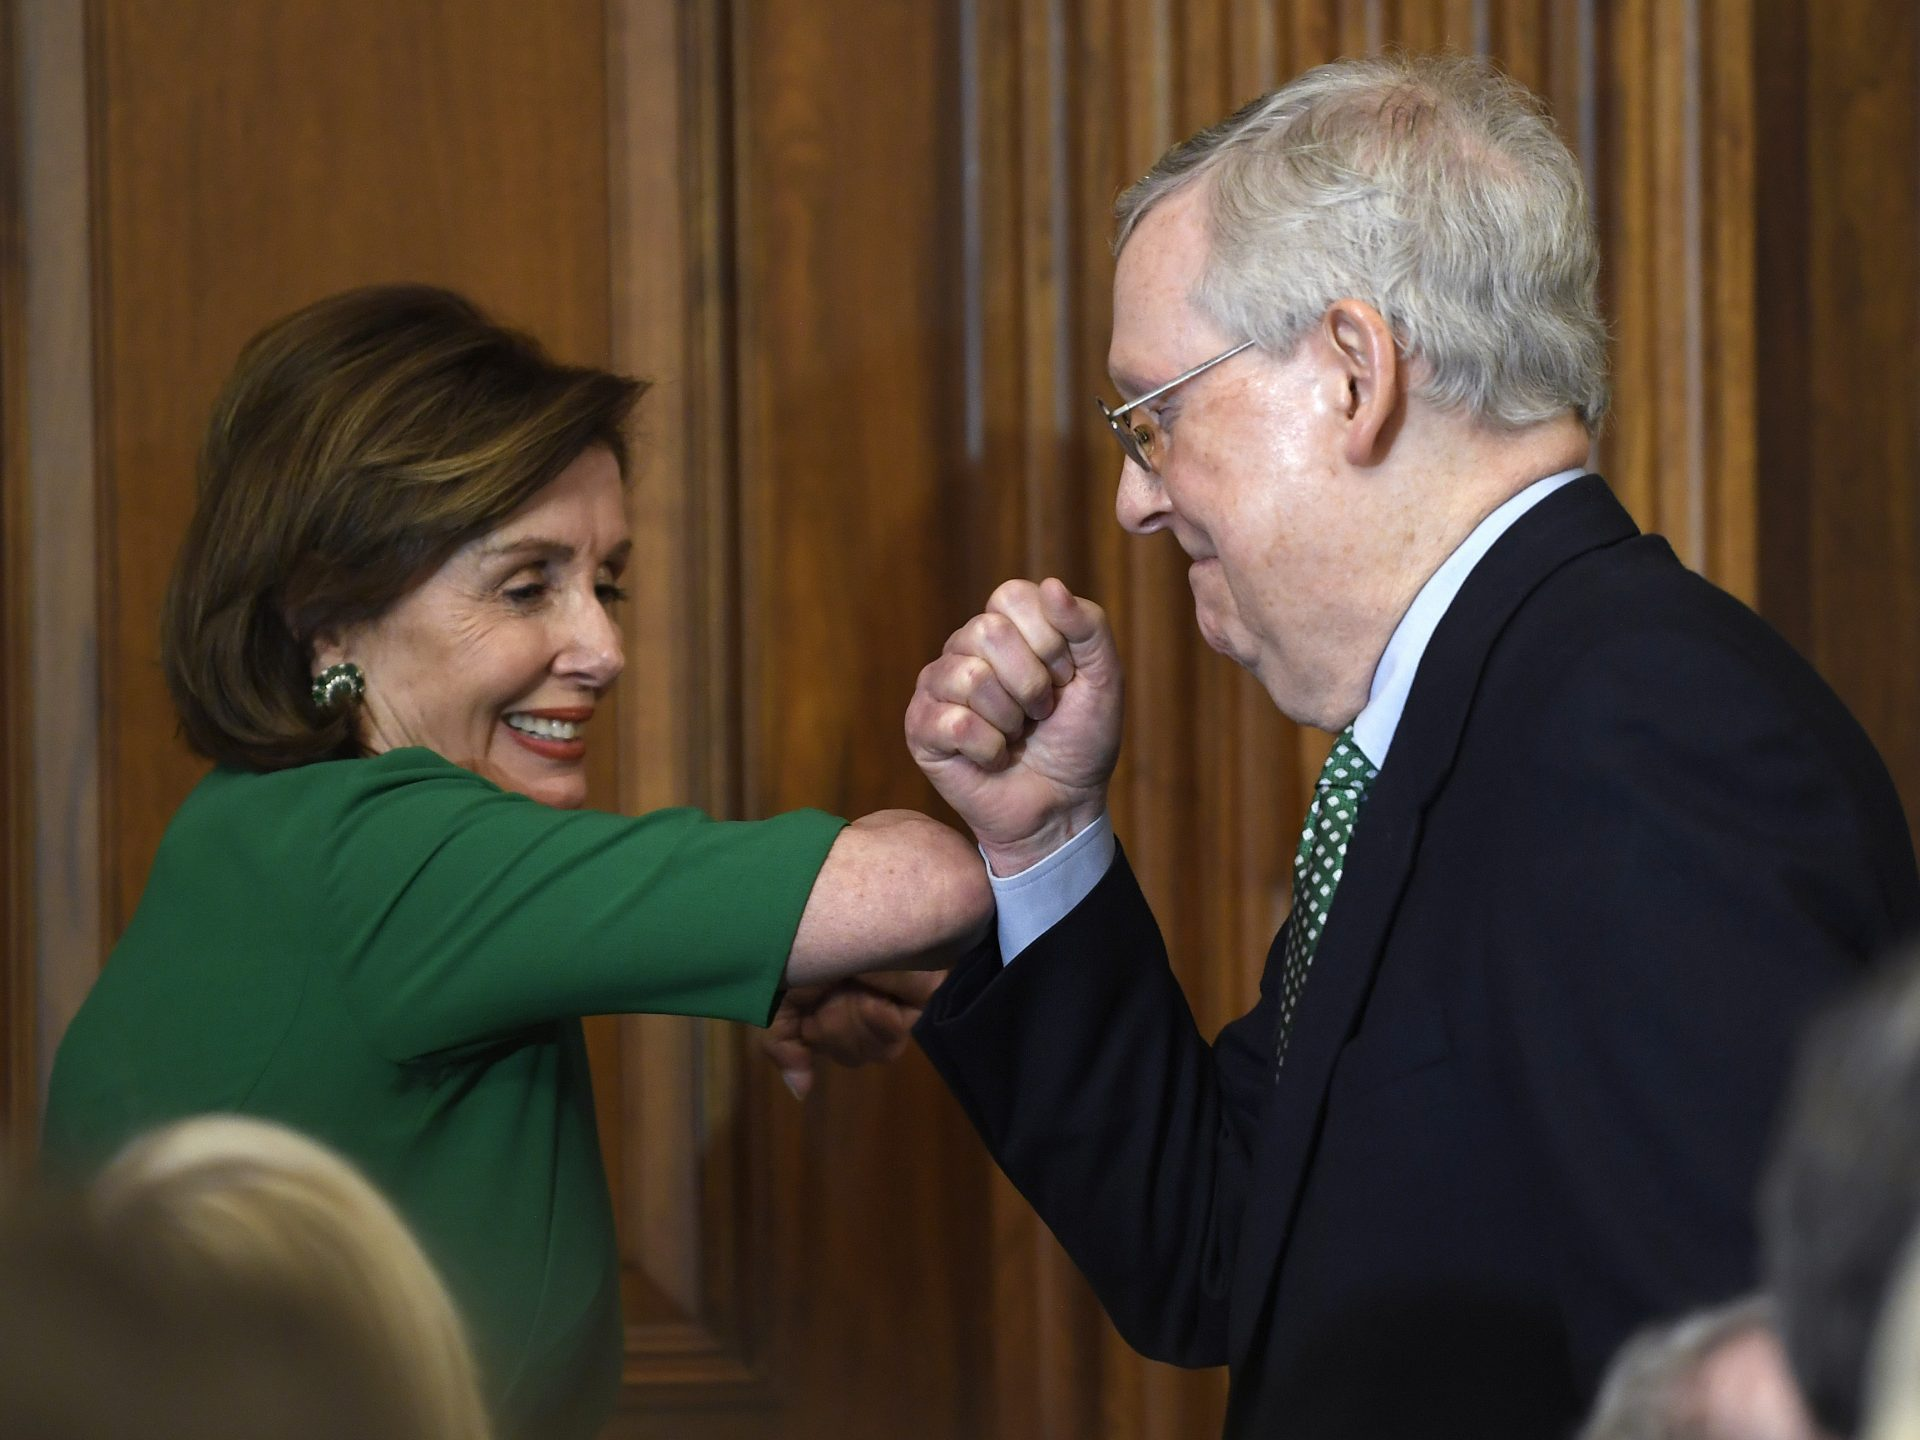 It is hoped for that House Speaker Nancy Pelosi and Senate Majority Leader Mitch McConnell can get the coronavirus legislation through their respective chambers through unanimous consent.